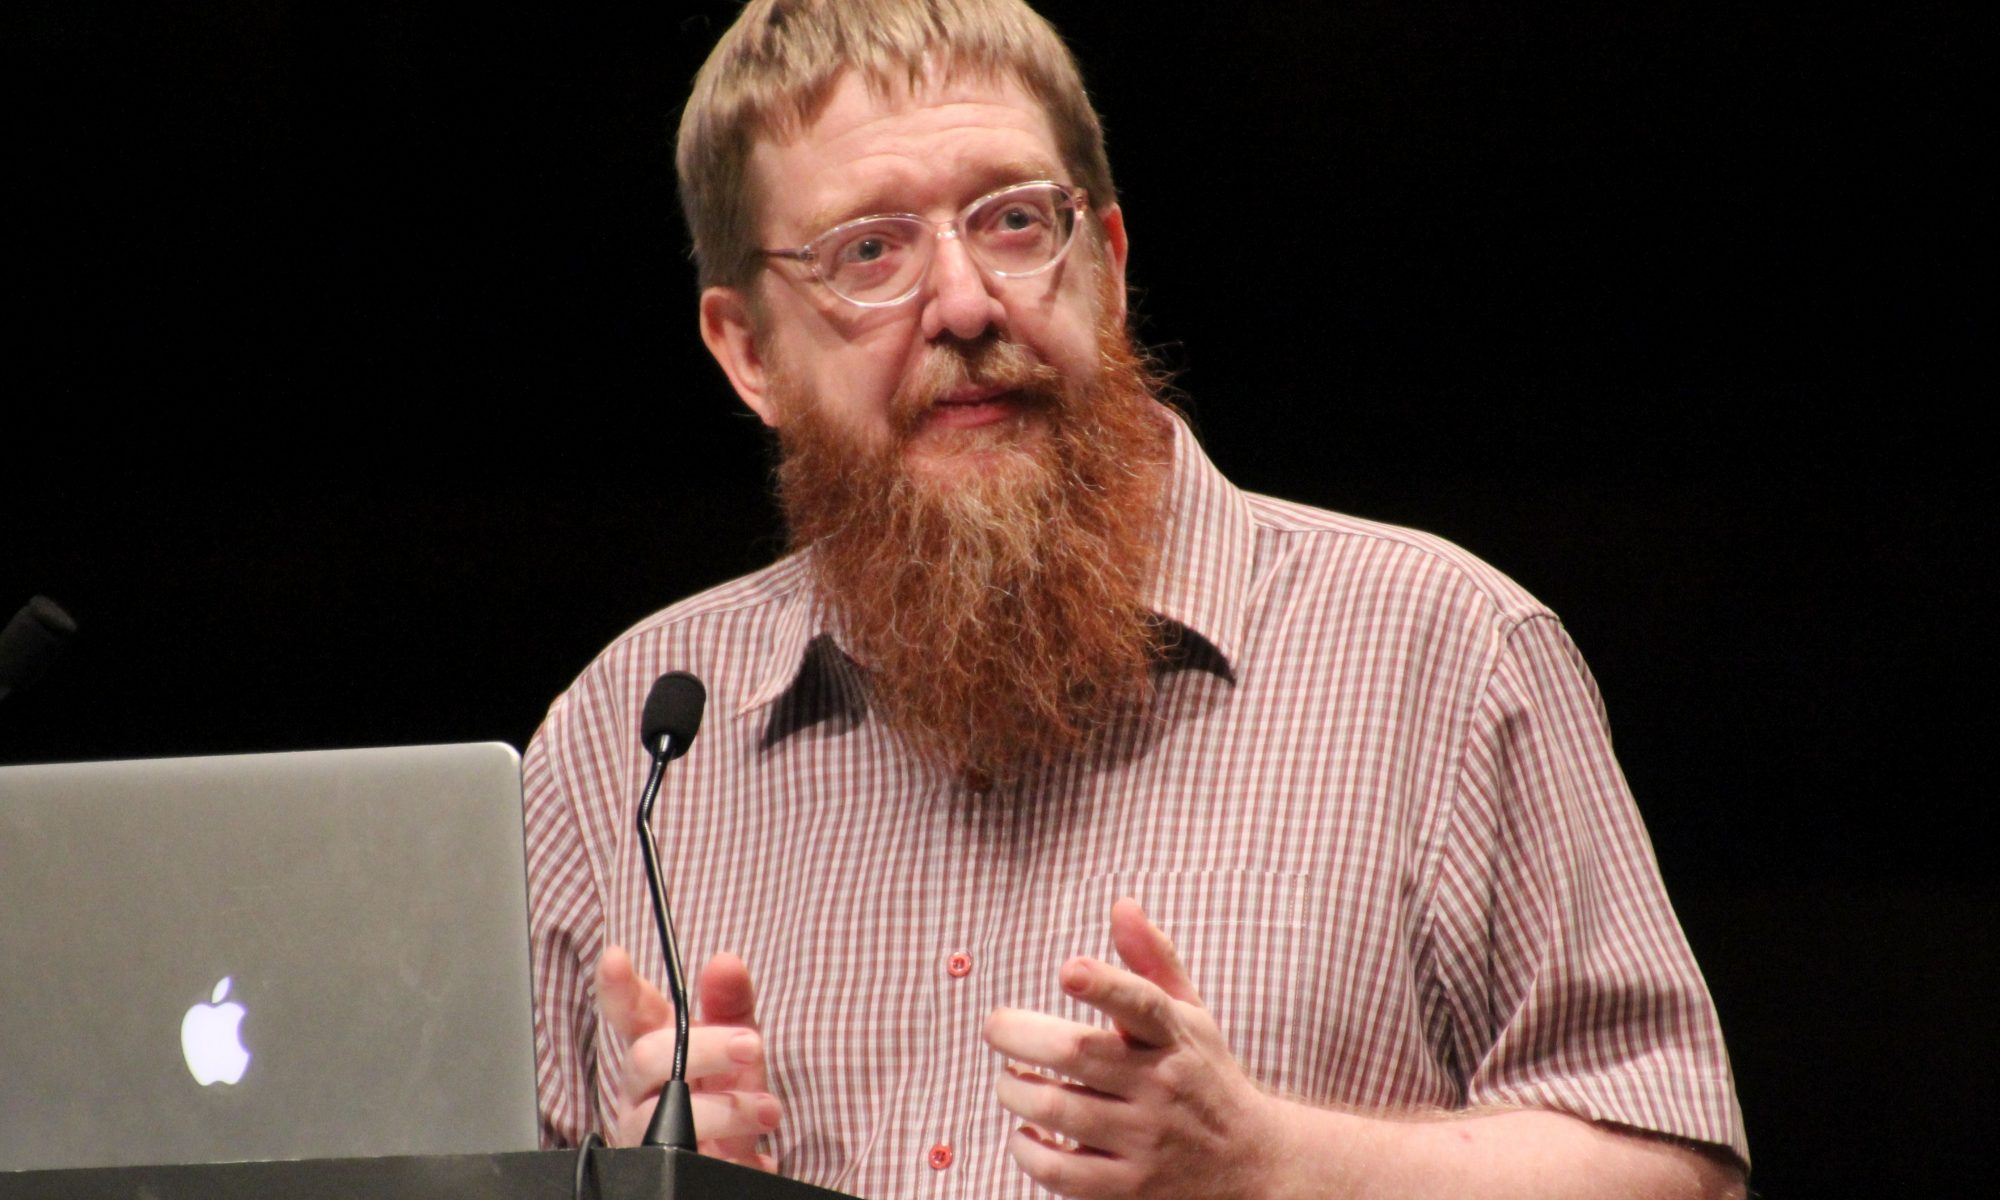 Andy Mabbett at Wikimania 2014 in London. Photo: Lionel Allorge. License: CC-BY-SA-3.0